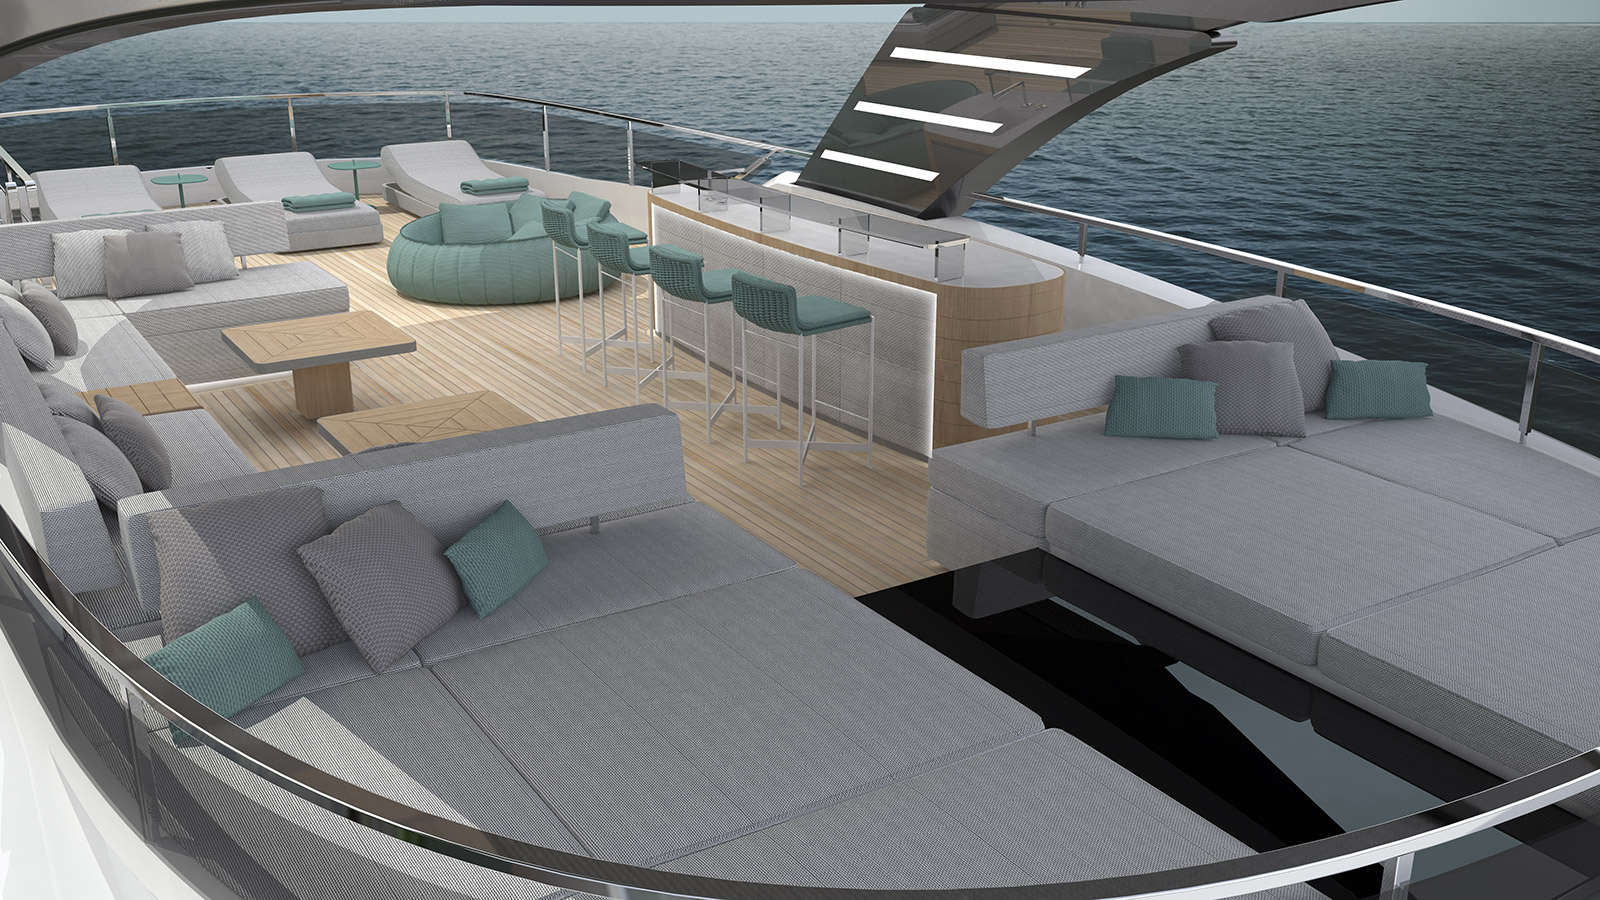 the-upper-deck-layout-of-the-team-for-design-yacht-Enrico-Gobbi-concept-t42